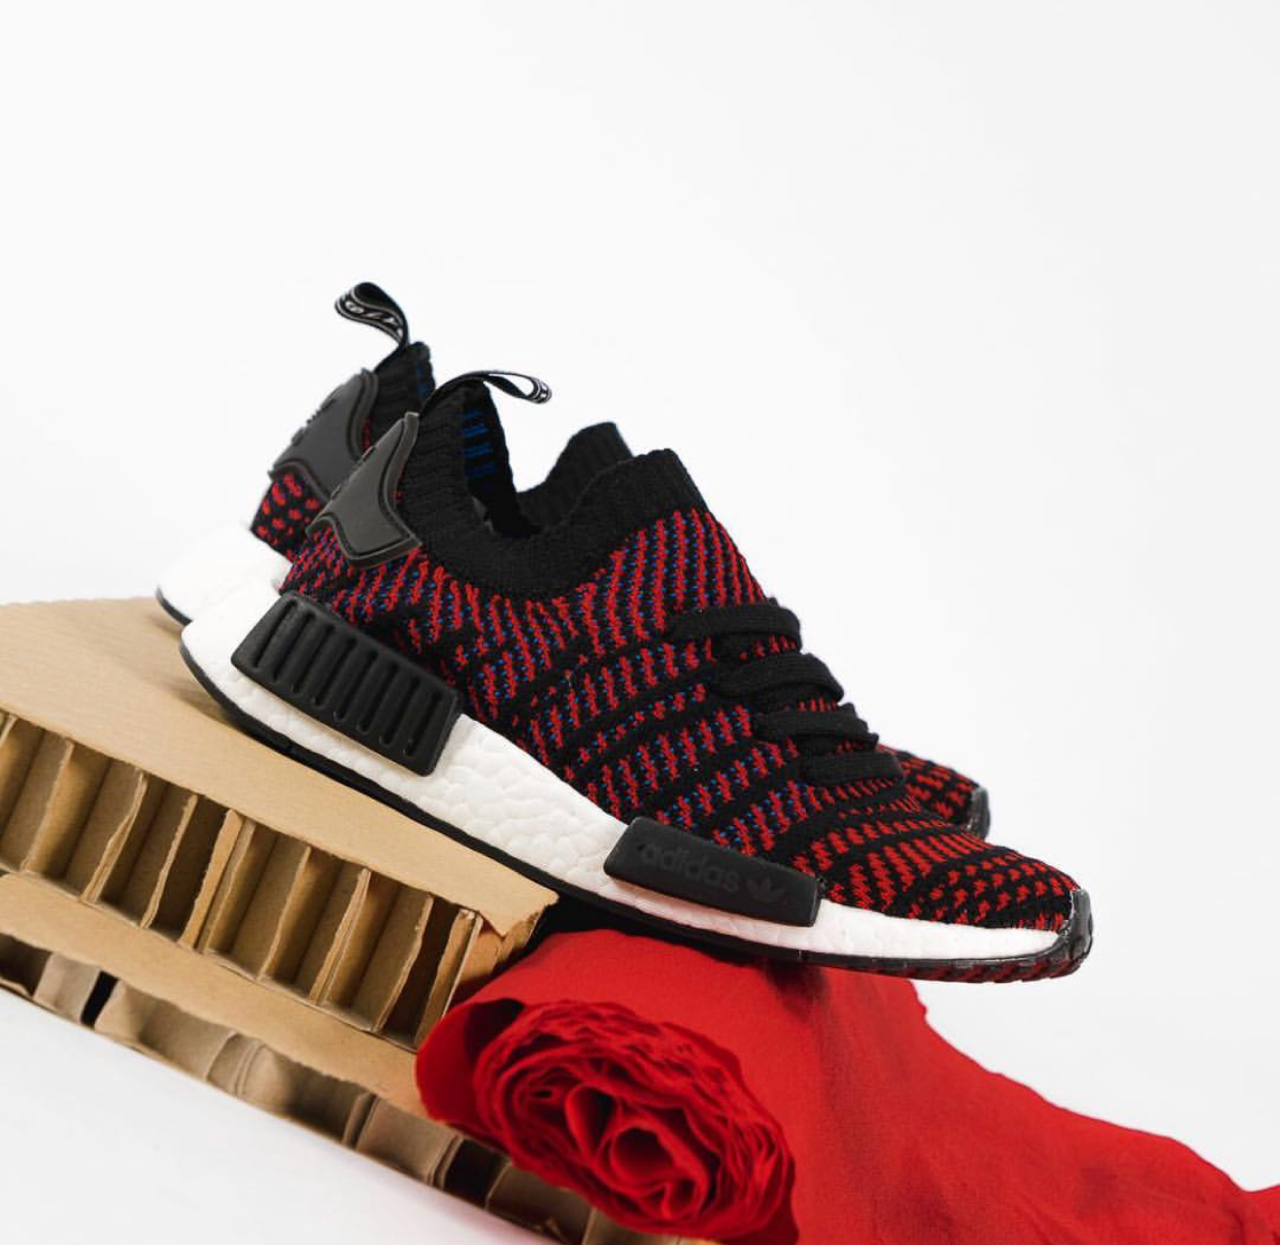 best service bcb62 d2188 Cop or Can adidas NMD R1 Primeknit